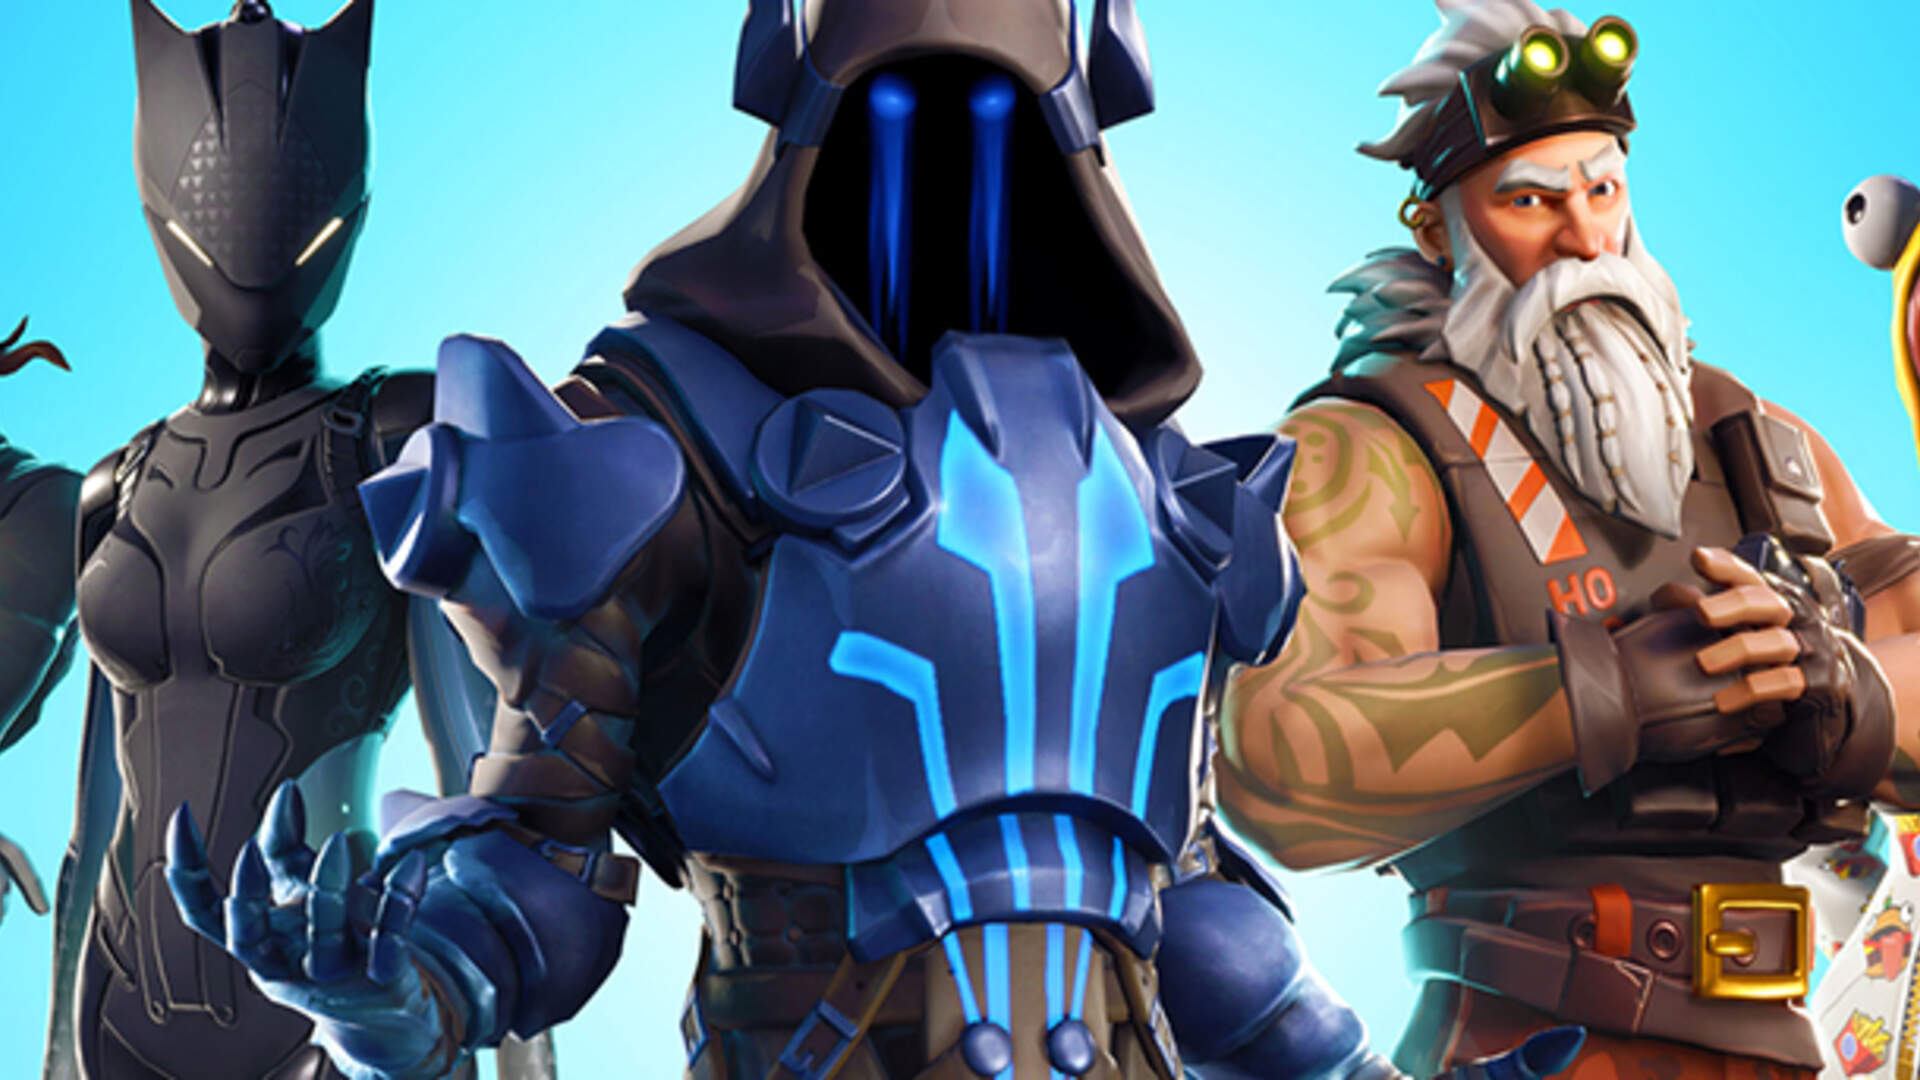 Fortnite Week 5 Challenges - How to Complete All Season 7, Week 5 Battle Pass Challenges